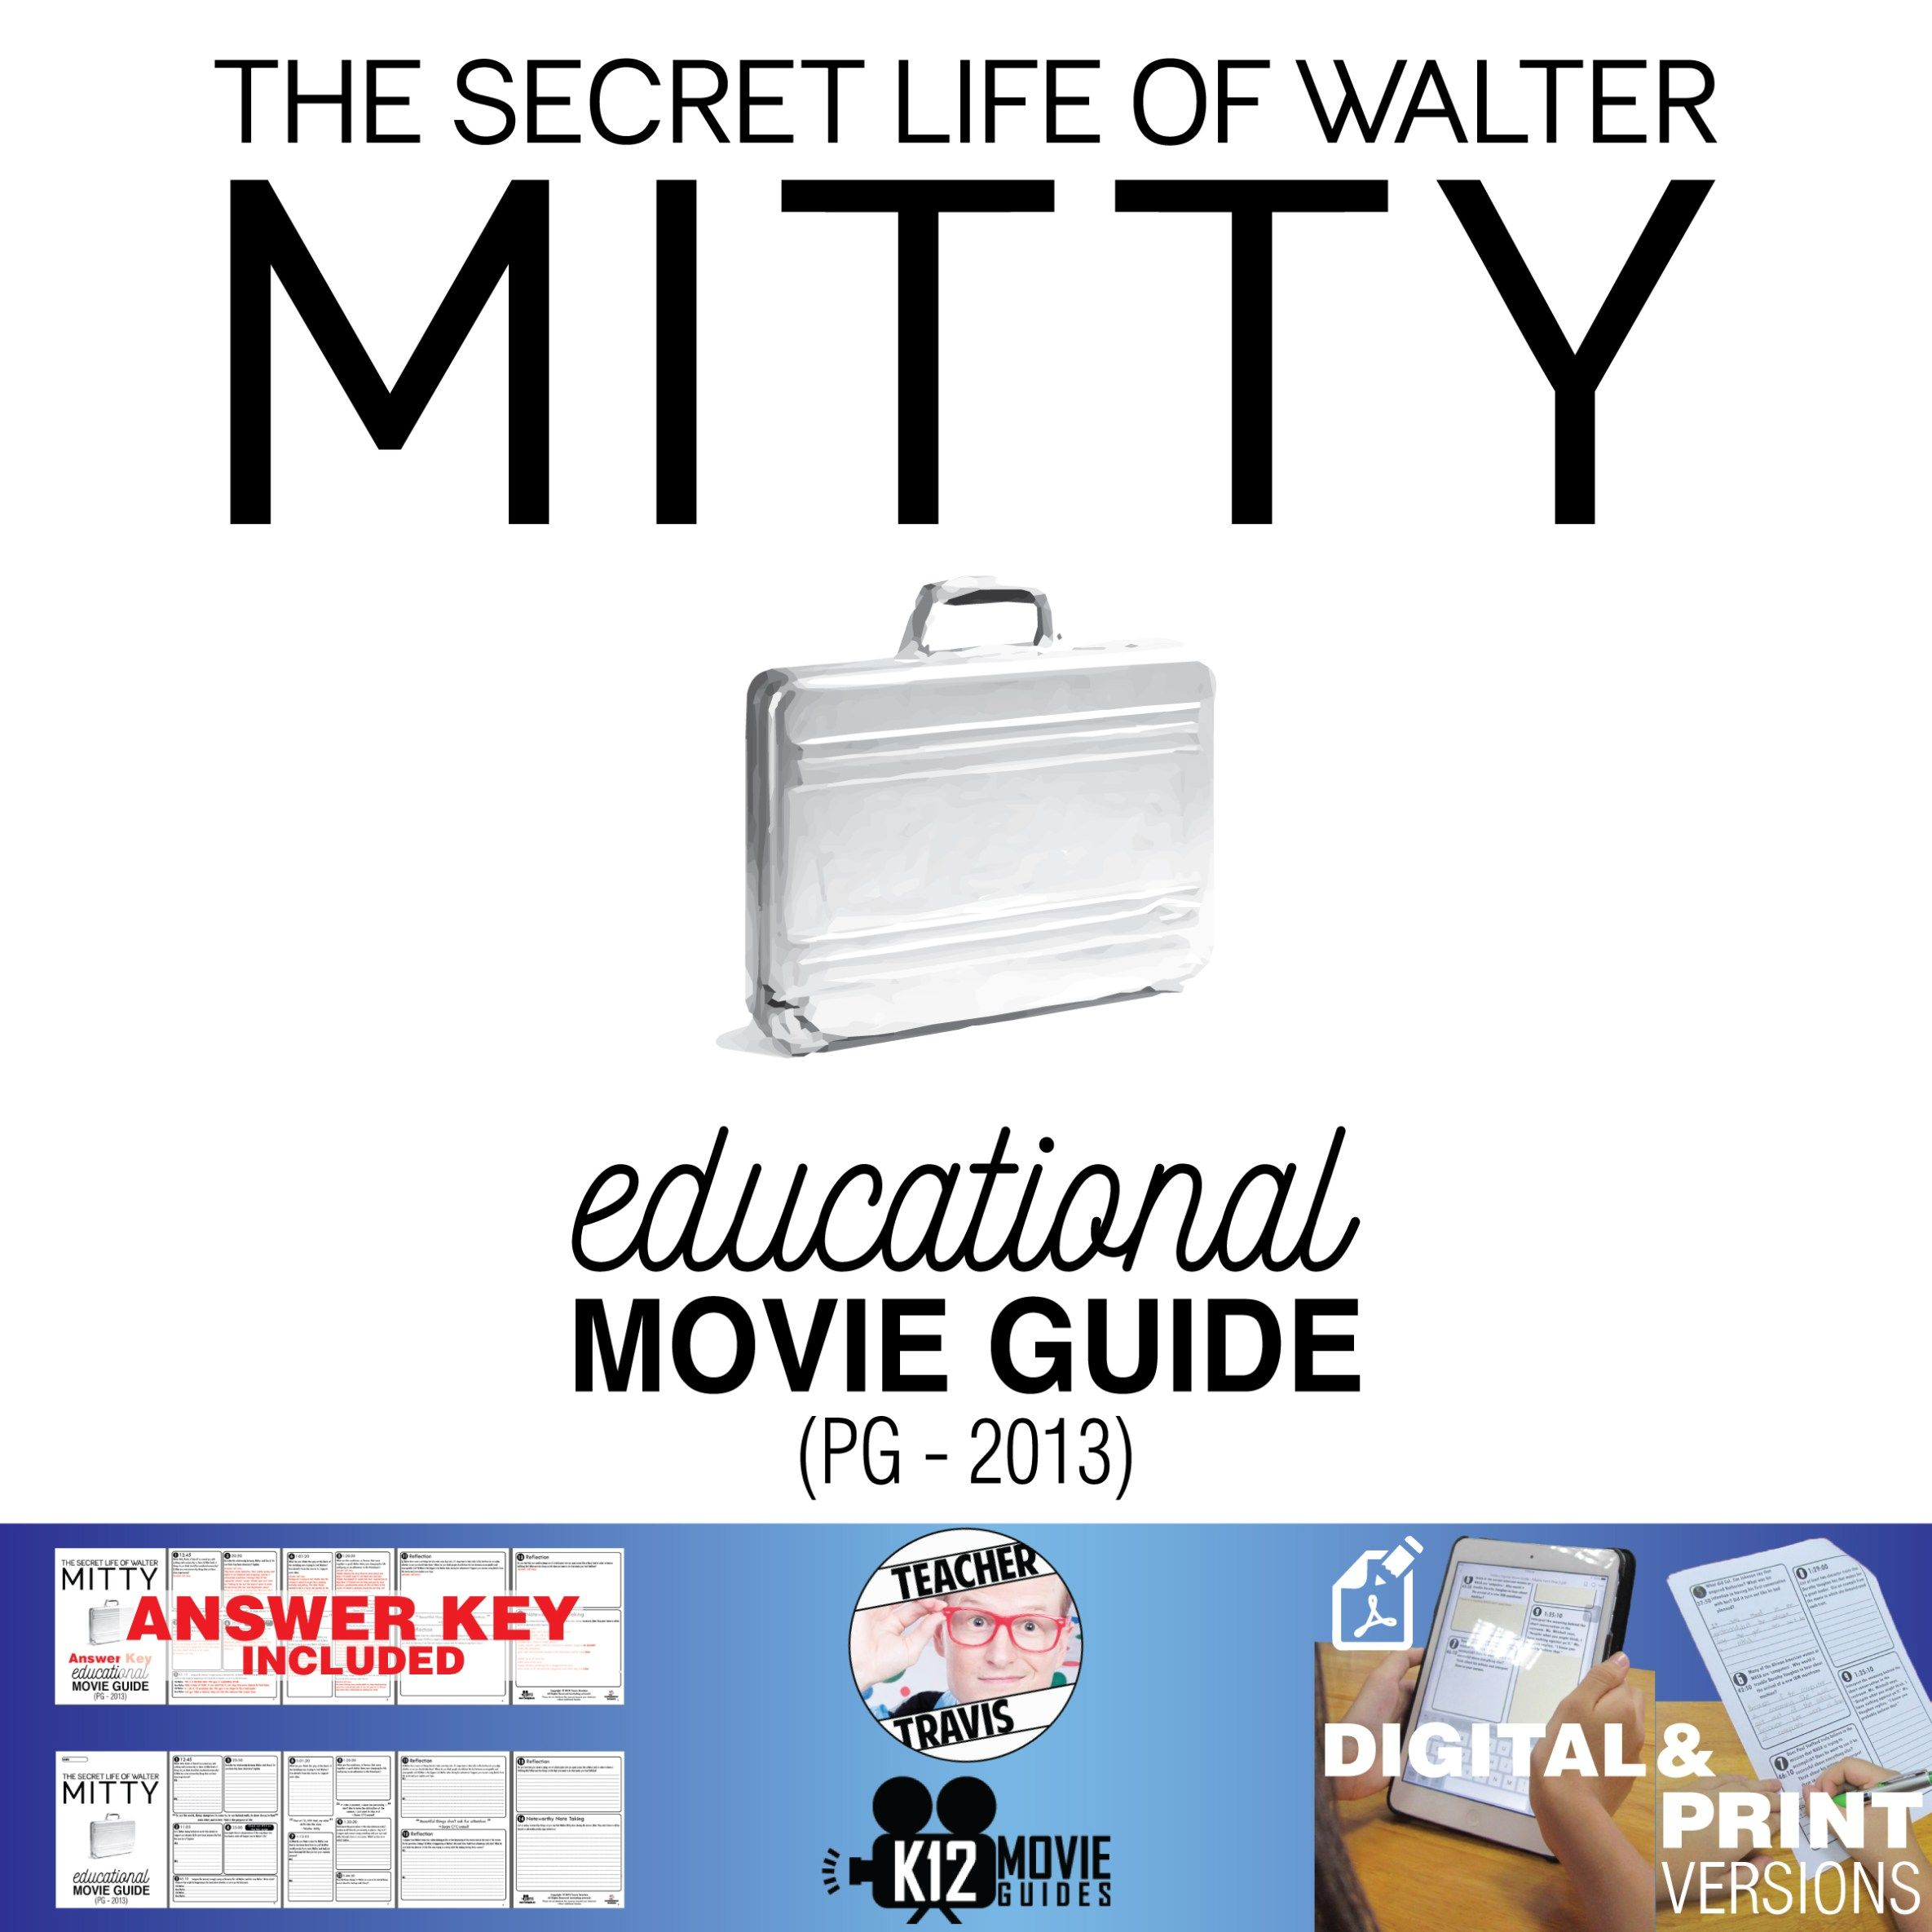 The Secret Life Of Walter Mitty Movie Guide